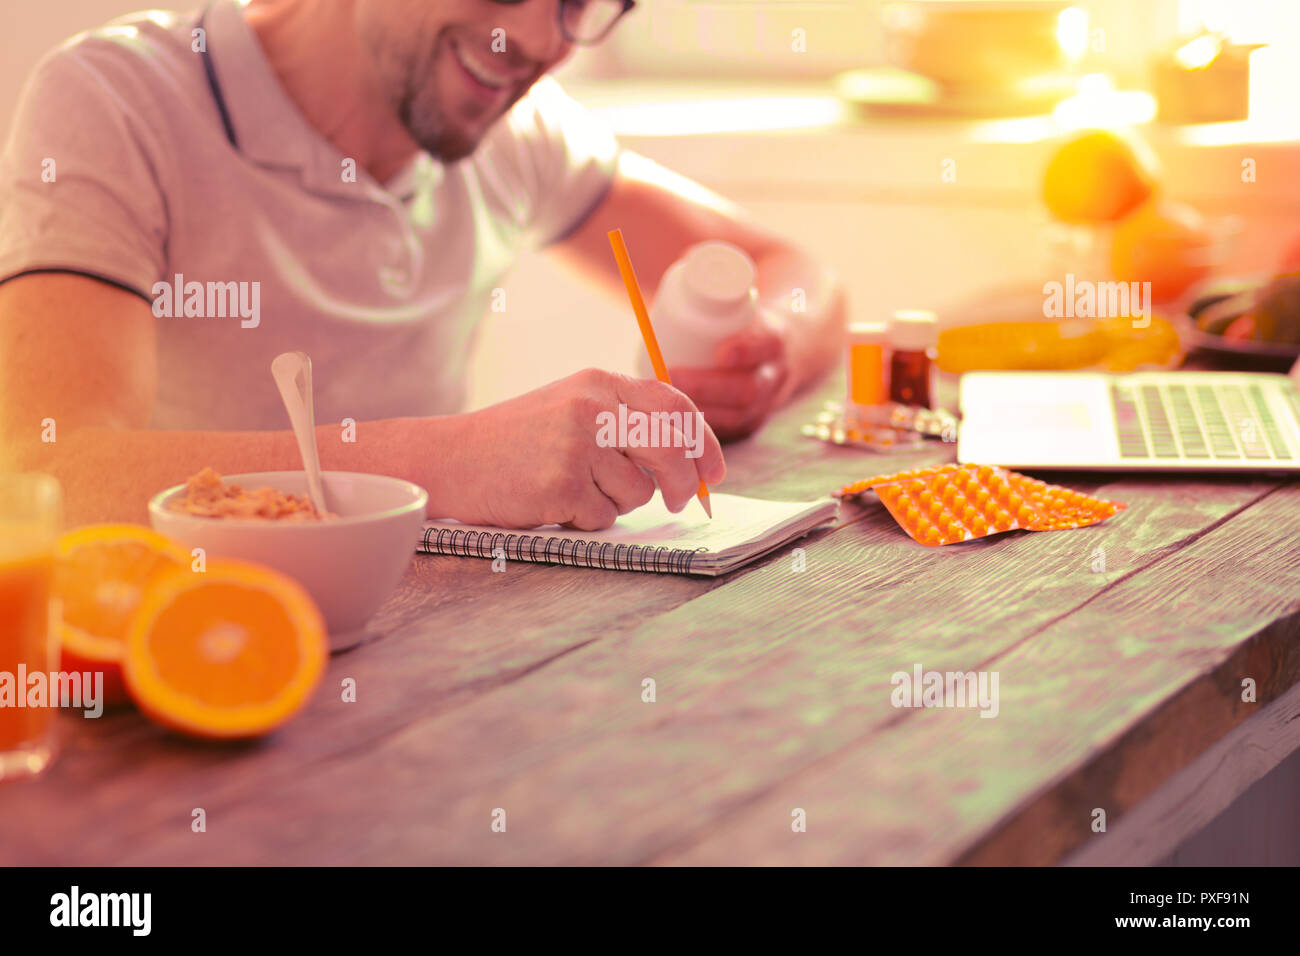 Smiling nice man making different notes in the notebook - Stock Image